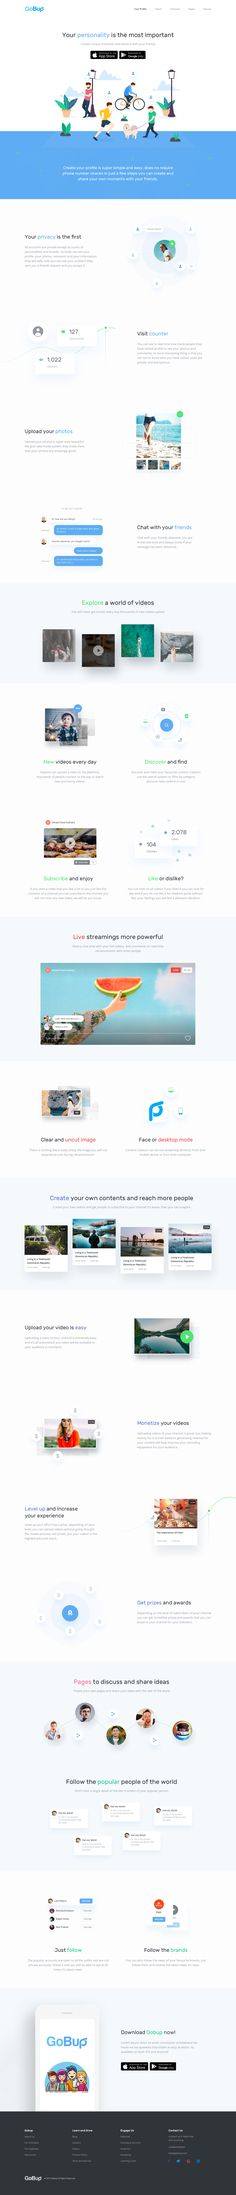 Gobup Red Social Landing Page | #ui #ux #userexperience #website #webdesign #design #minimal #minimalism #art #white #orange #blue #travel #map #ecommerce #fashion